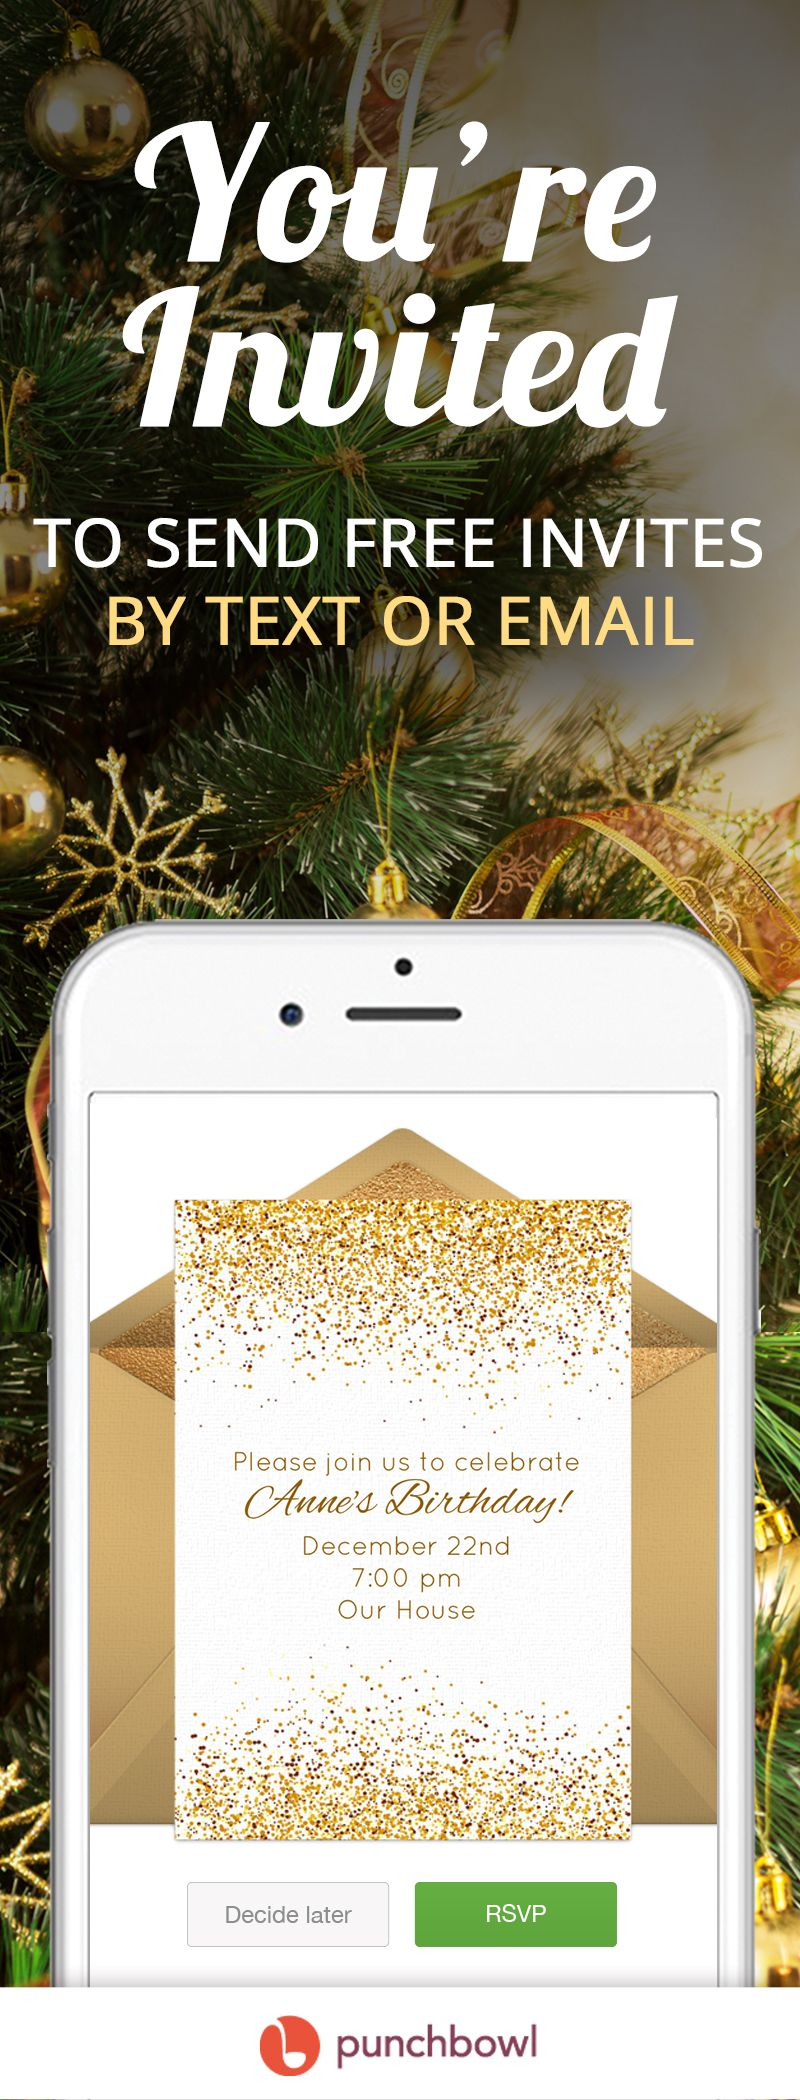 Send Free Christmas Birthday Invitations By Text Message Right From Your Phone And Get RSVPs Instantly With Punchbowl Party Planning Has Never Been Faster